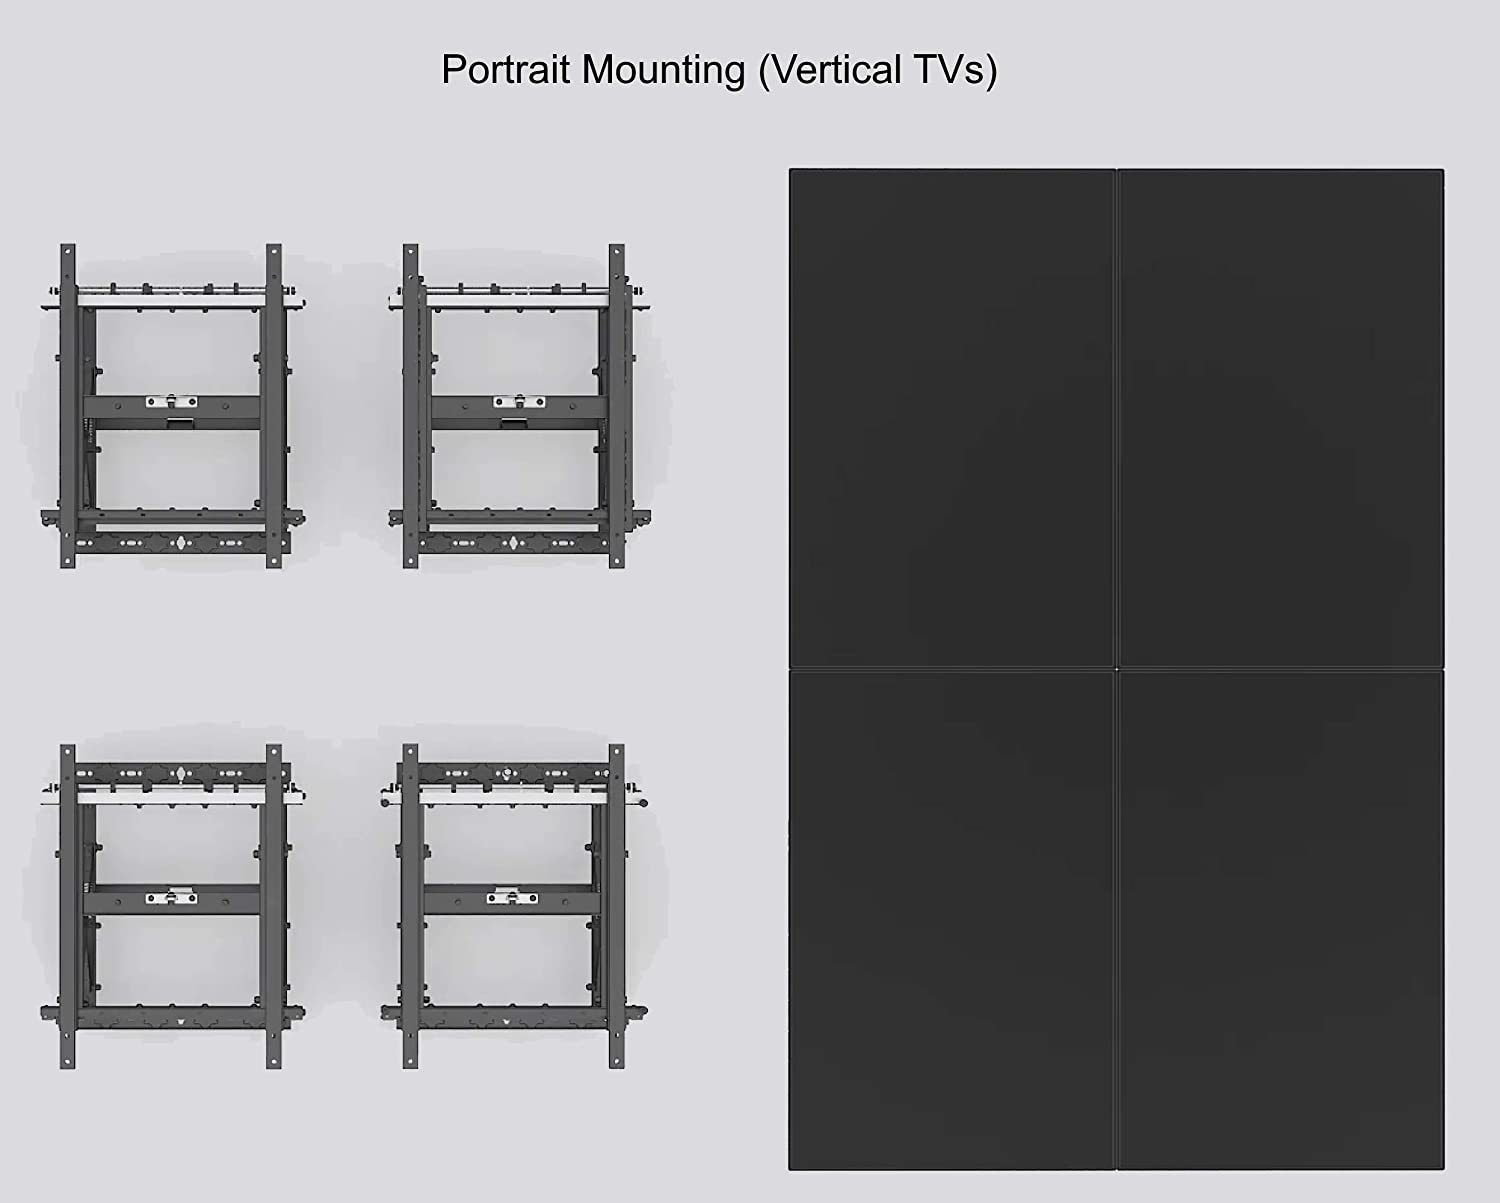 Video Wall TV Pop Out Mount 600x400 Vesa Portrait Display Push with Micro Adjustment Arms Vesa Universal TV Television 3x3 2x2 3x2 2x3 4x4 5x5 Articulating Peerless (Video Wall Mount - Pop Out)